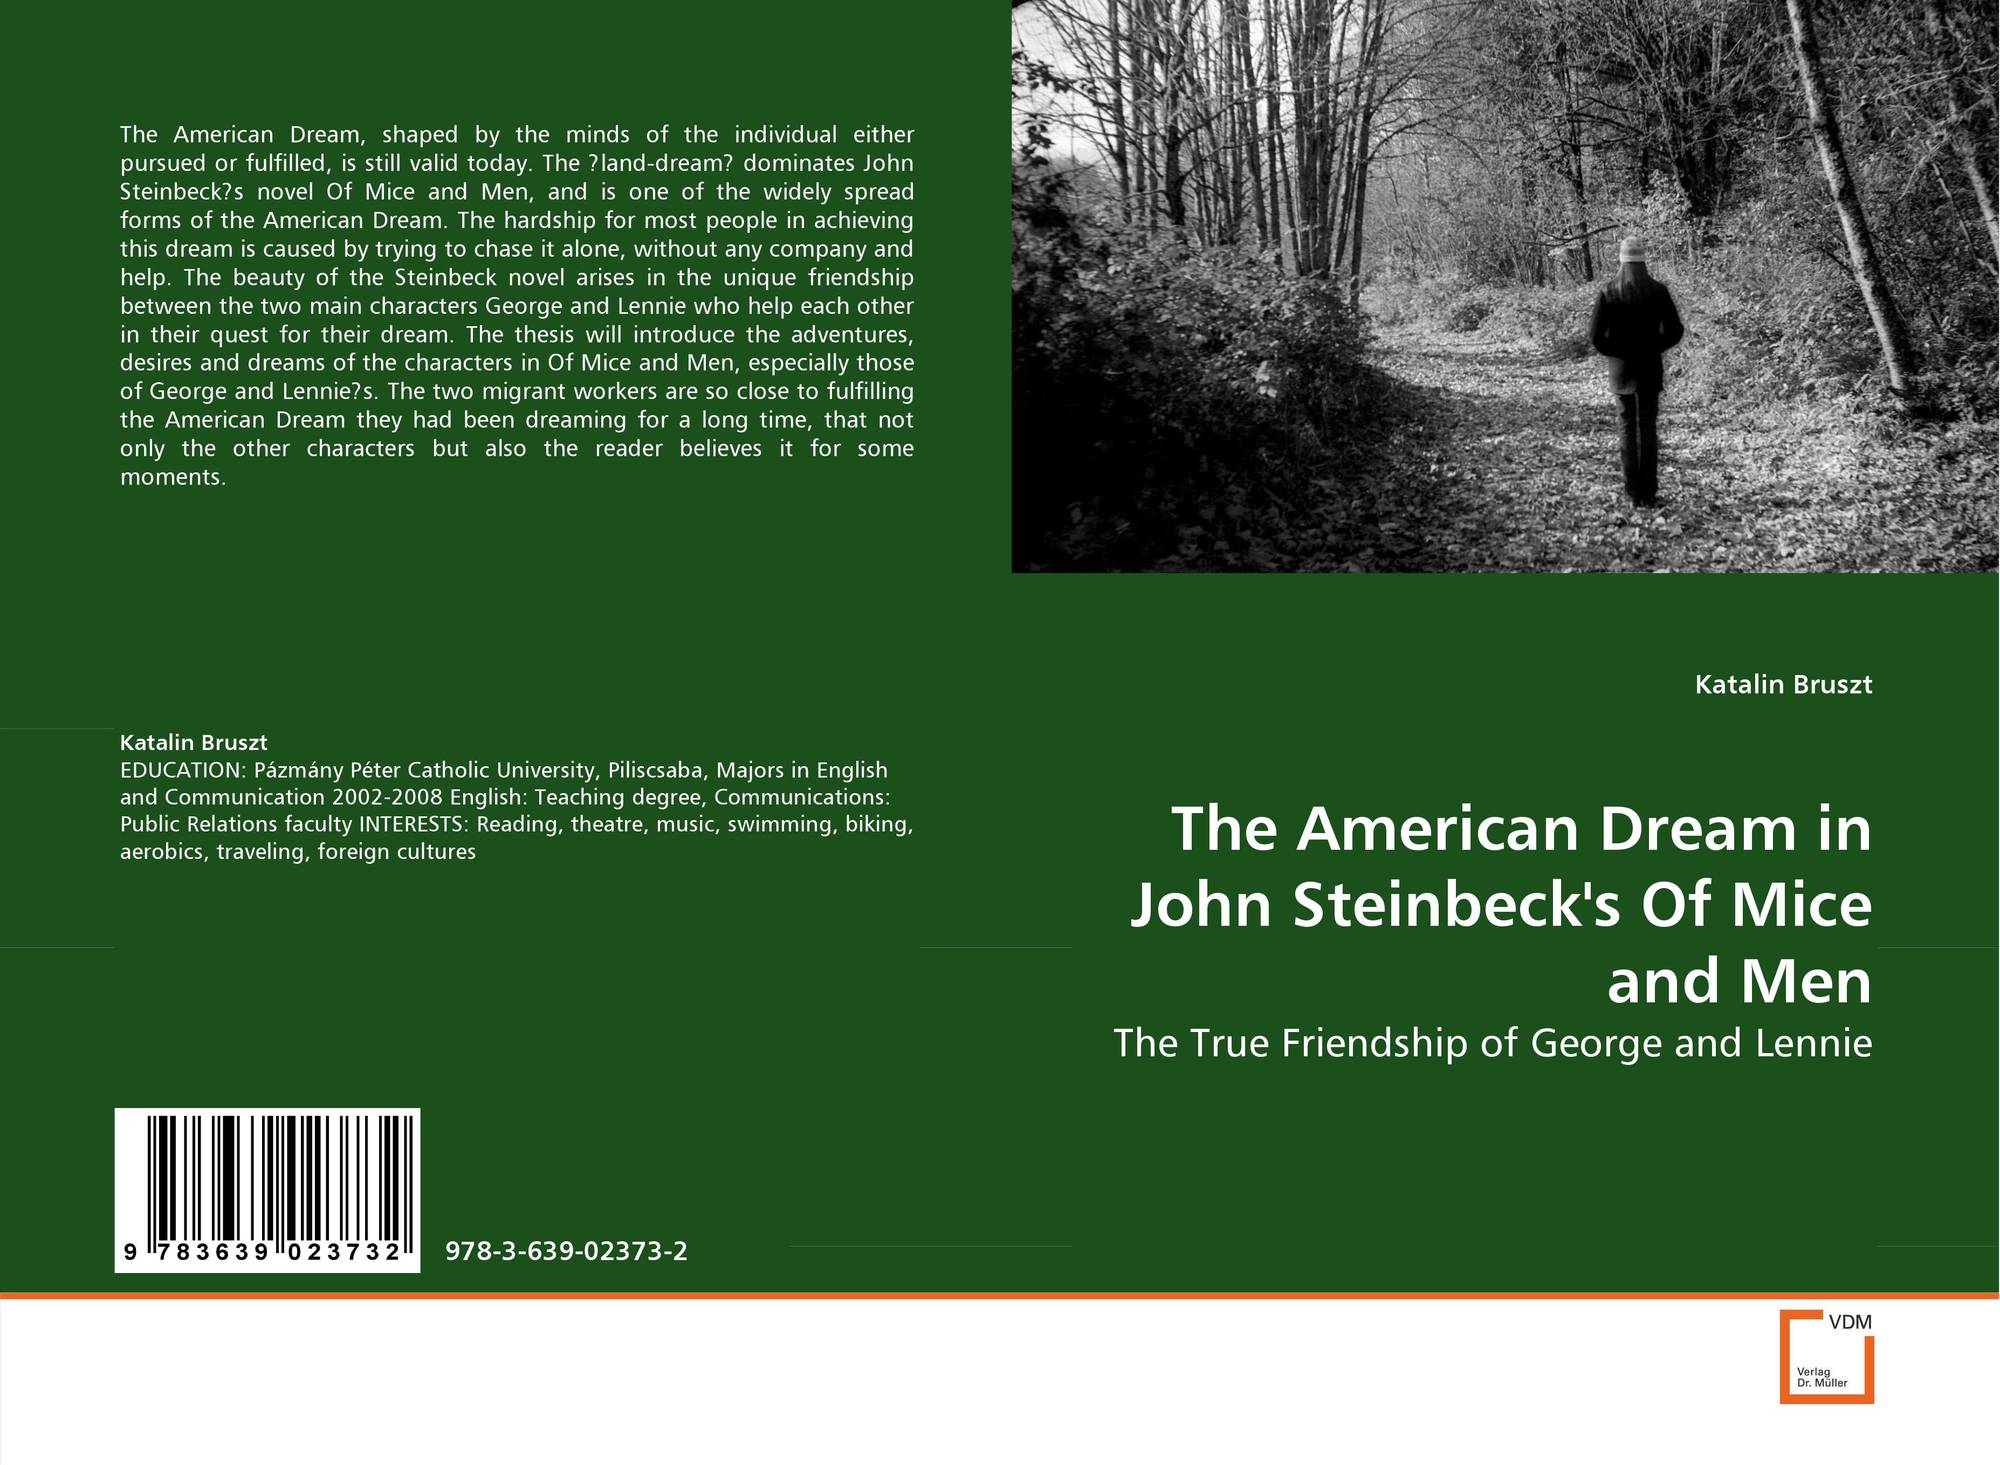 the american dream in steinbecks of mice and men The american dream: harper lee and john steinbeck introduction the american dream ultimately means many things to many people in many ways it can be argued to have originated with the ideals and success of benjamin franklin.